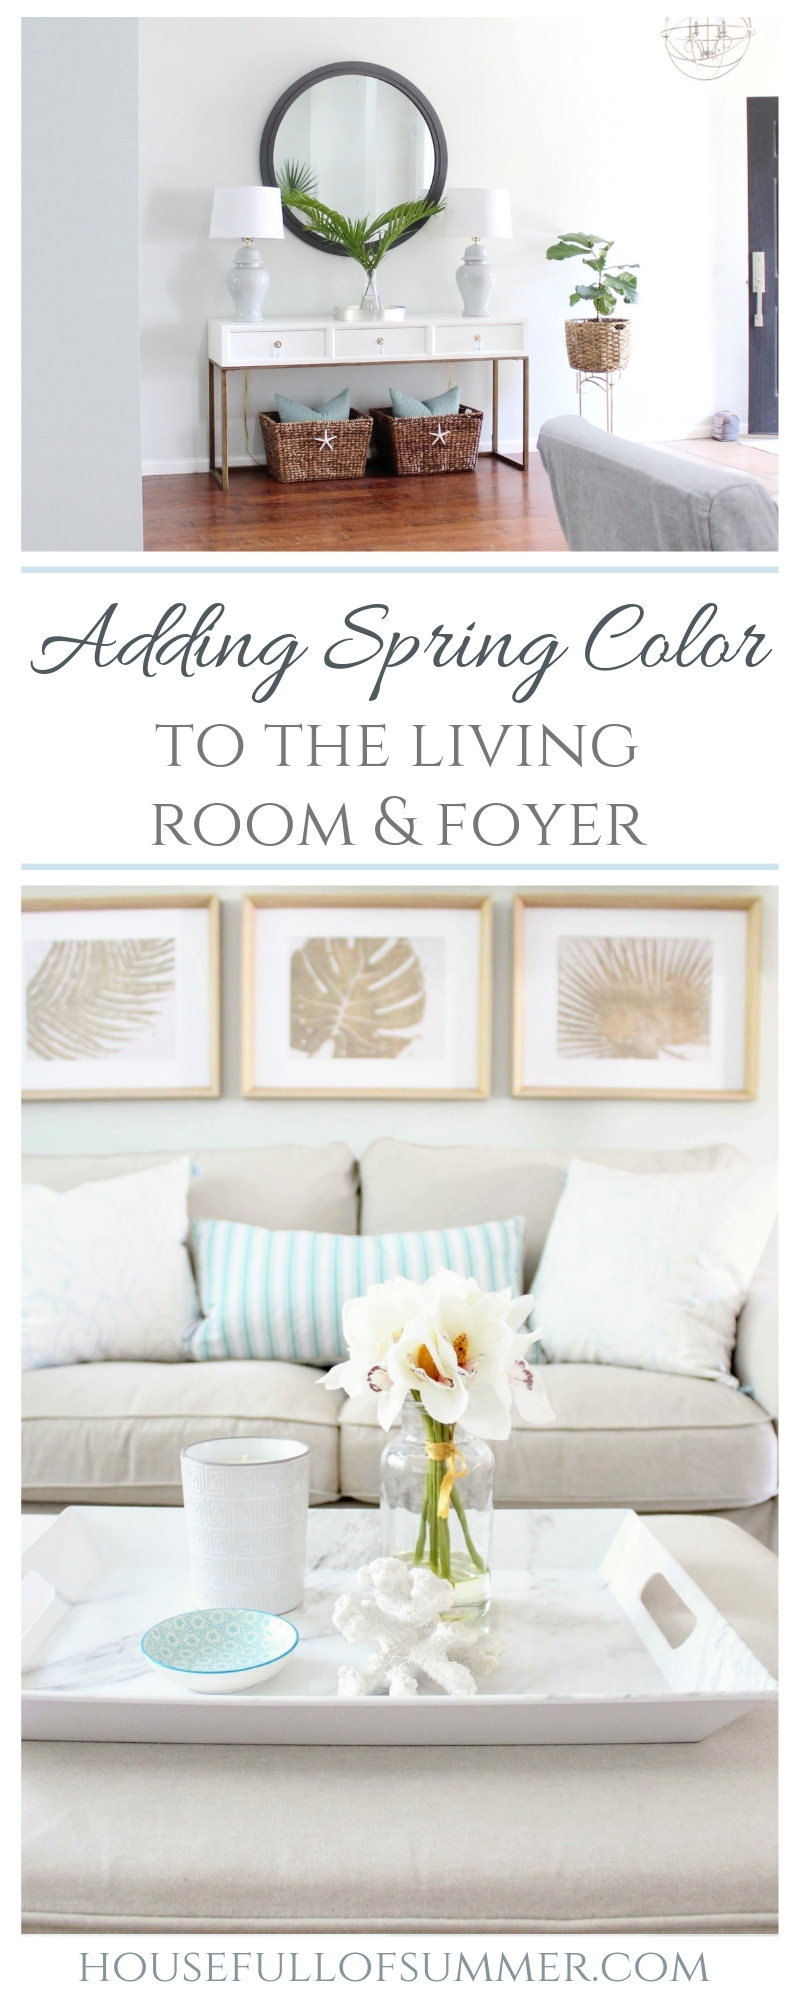 Adding Spring Color To The Living Room And Foyer House Full Of